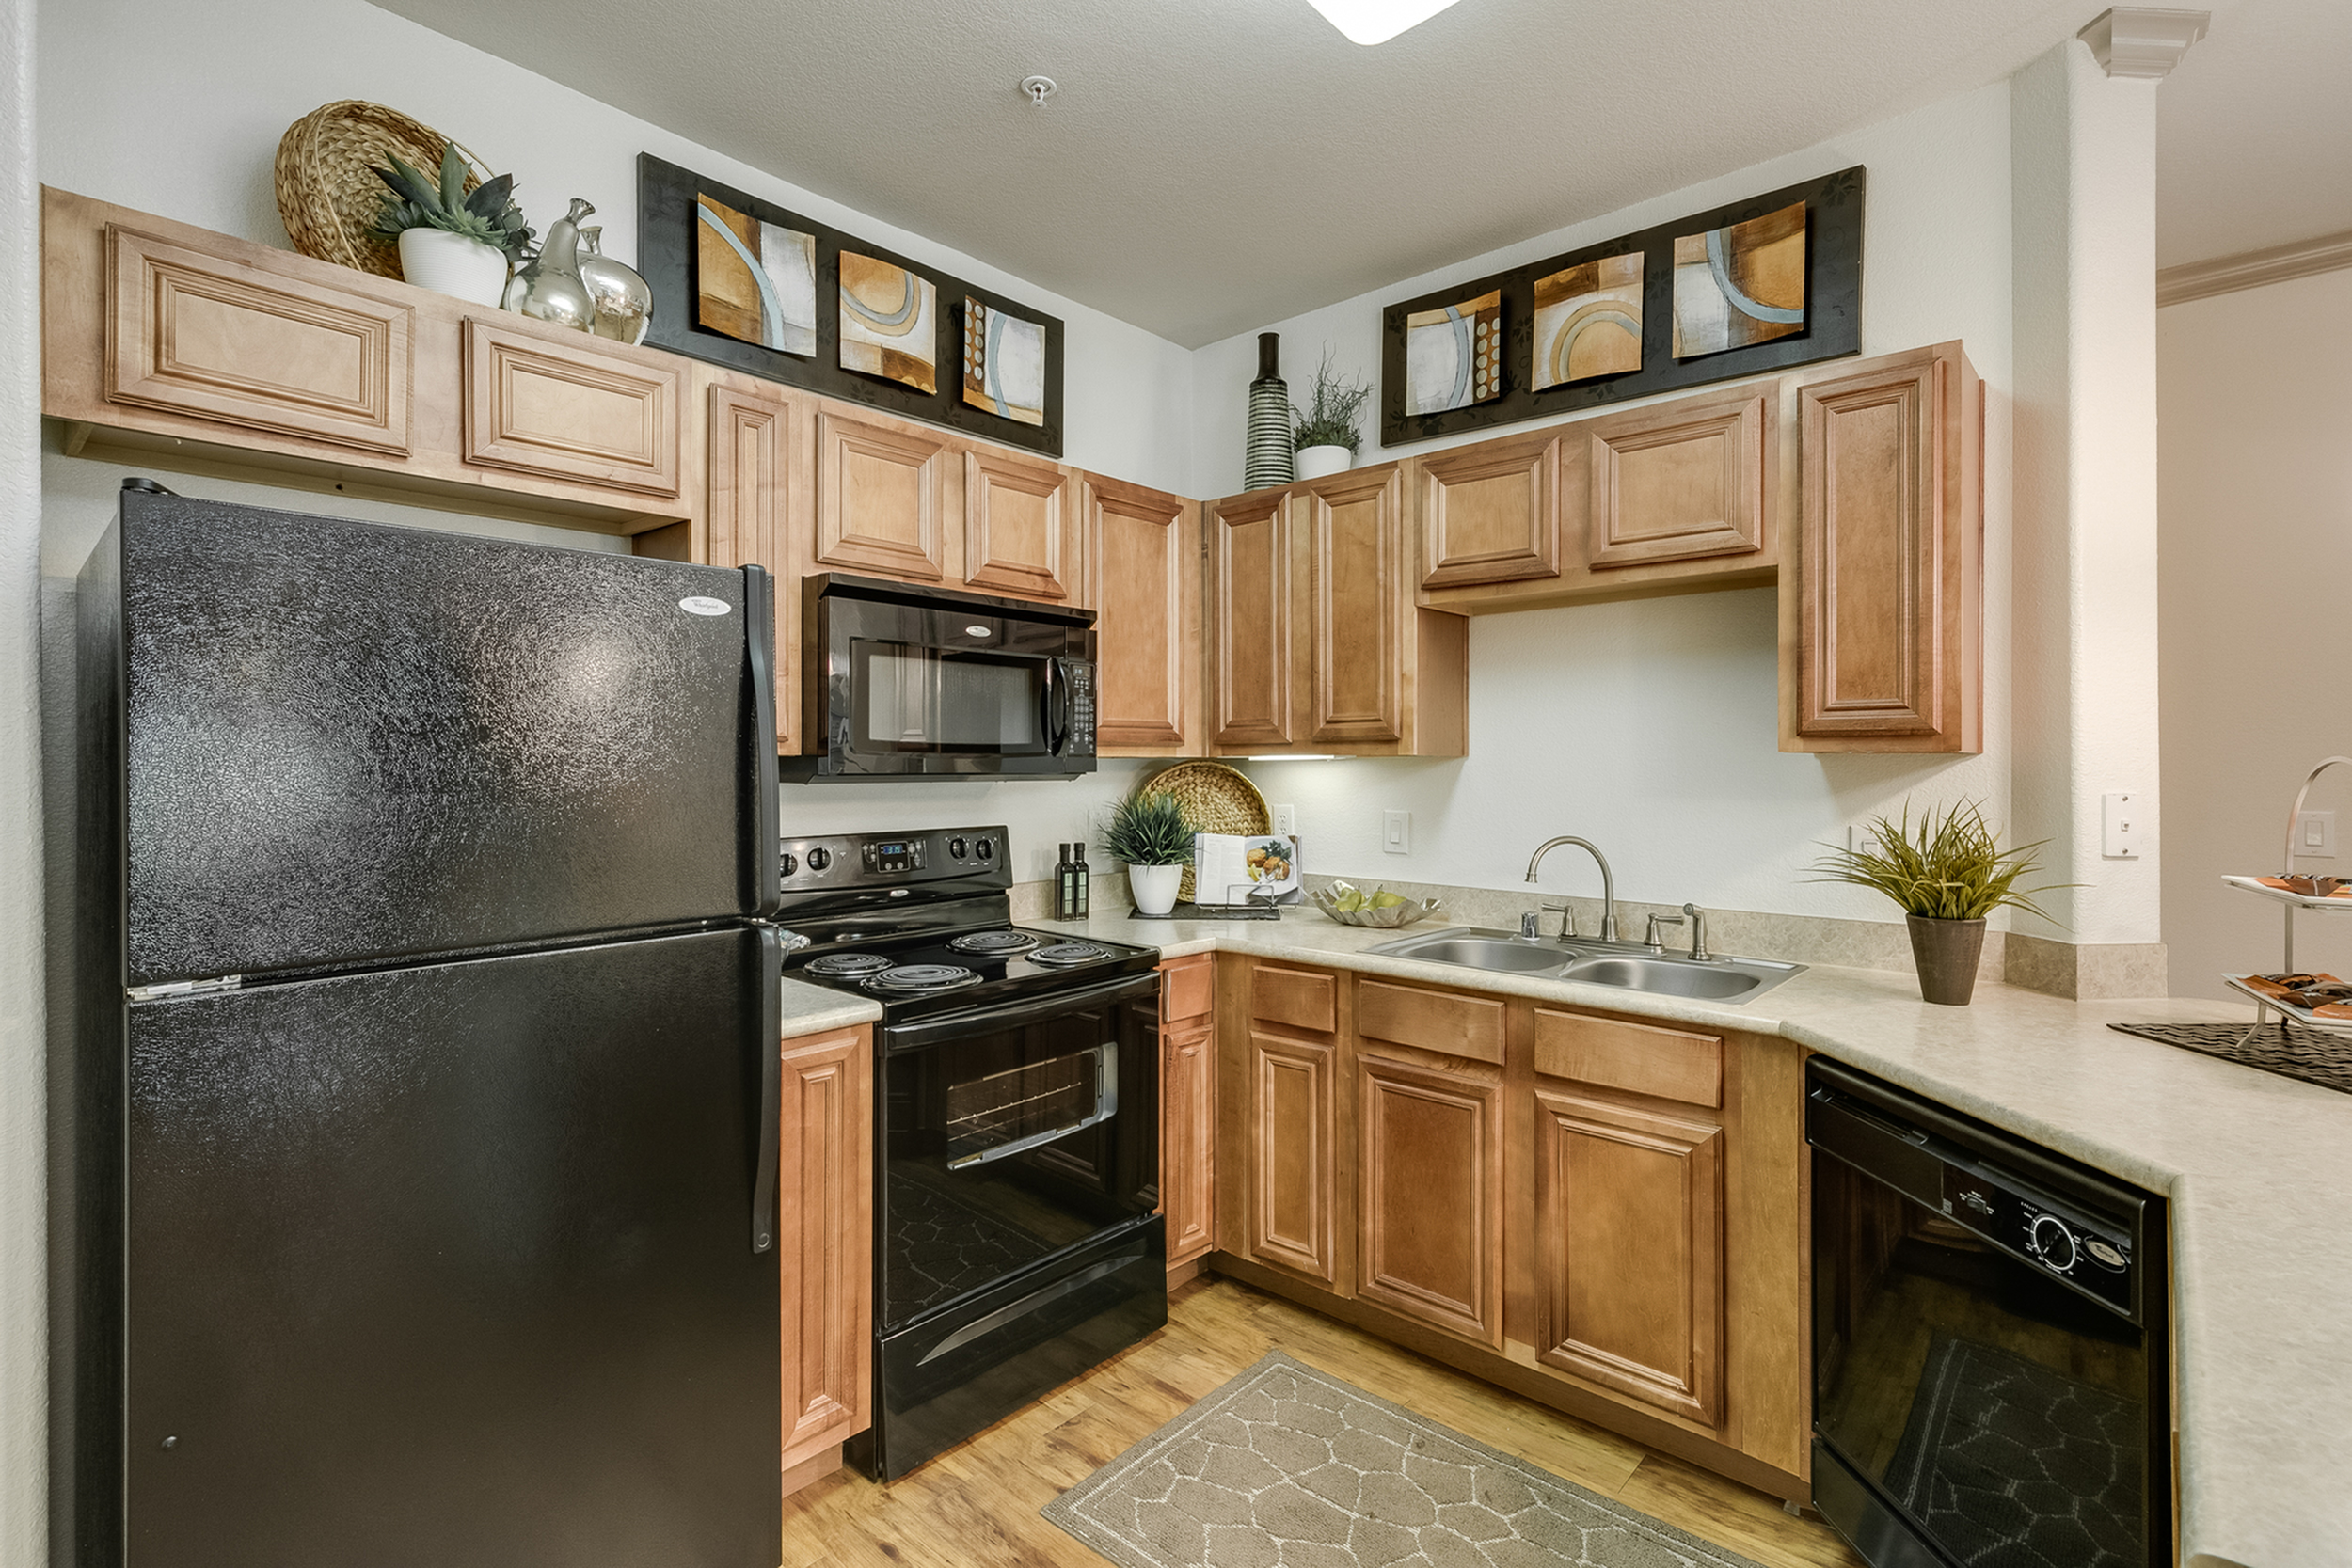 View of Kitchen, Showing Gas Appliances, Countertops, Cabinetry, Double Sink, and Plank Flooring at Retreat at Stafford Apartments